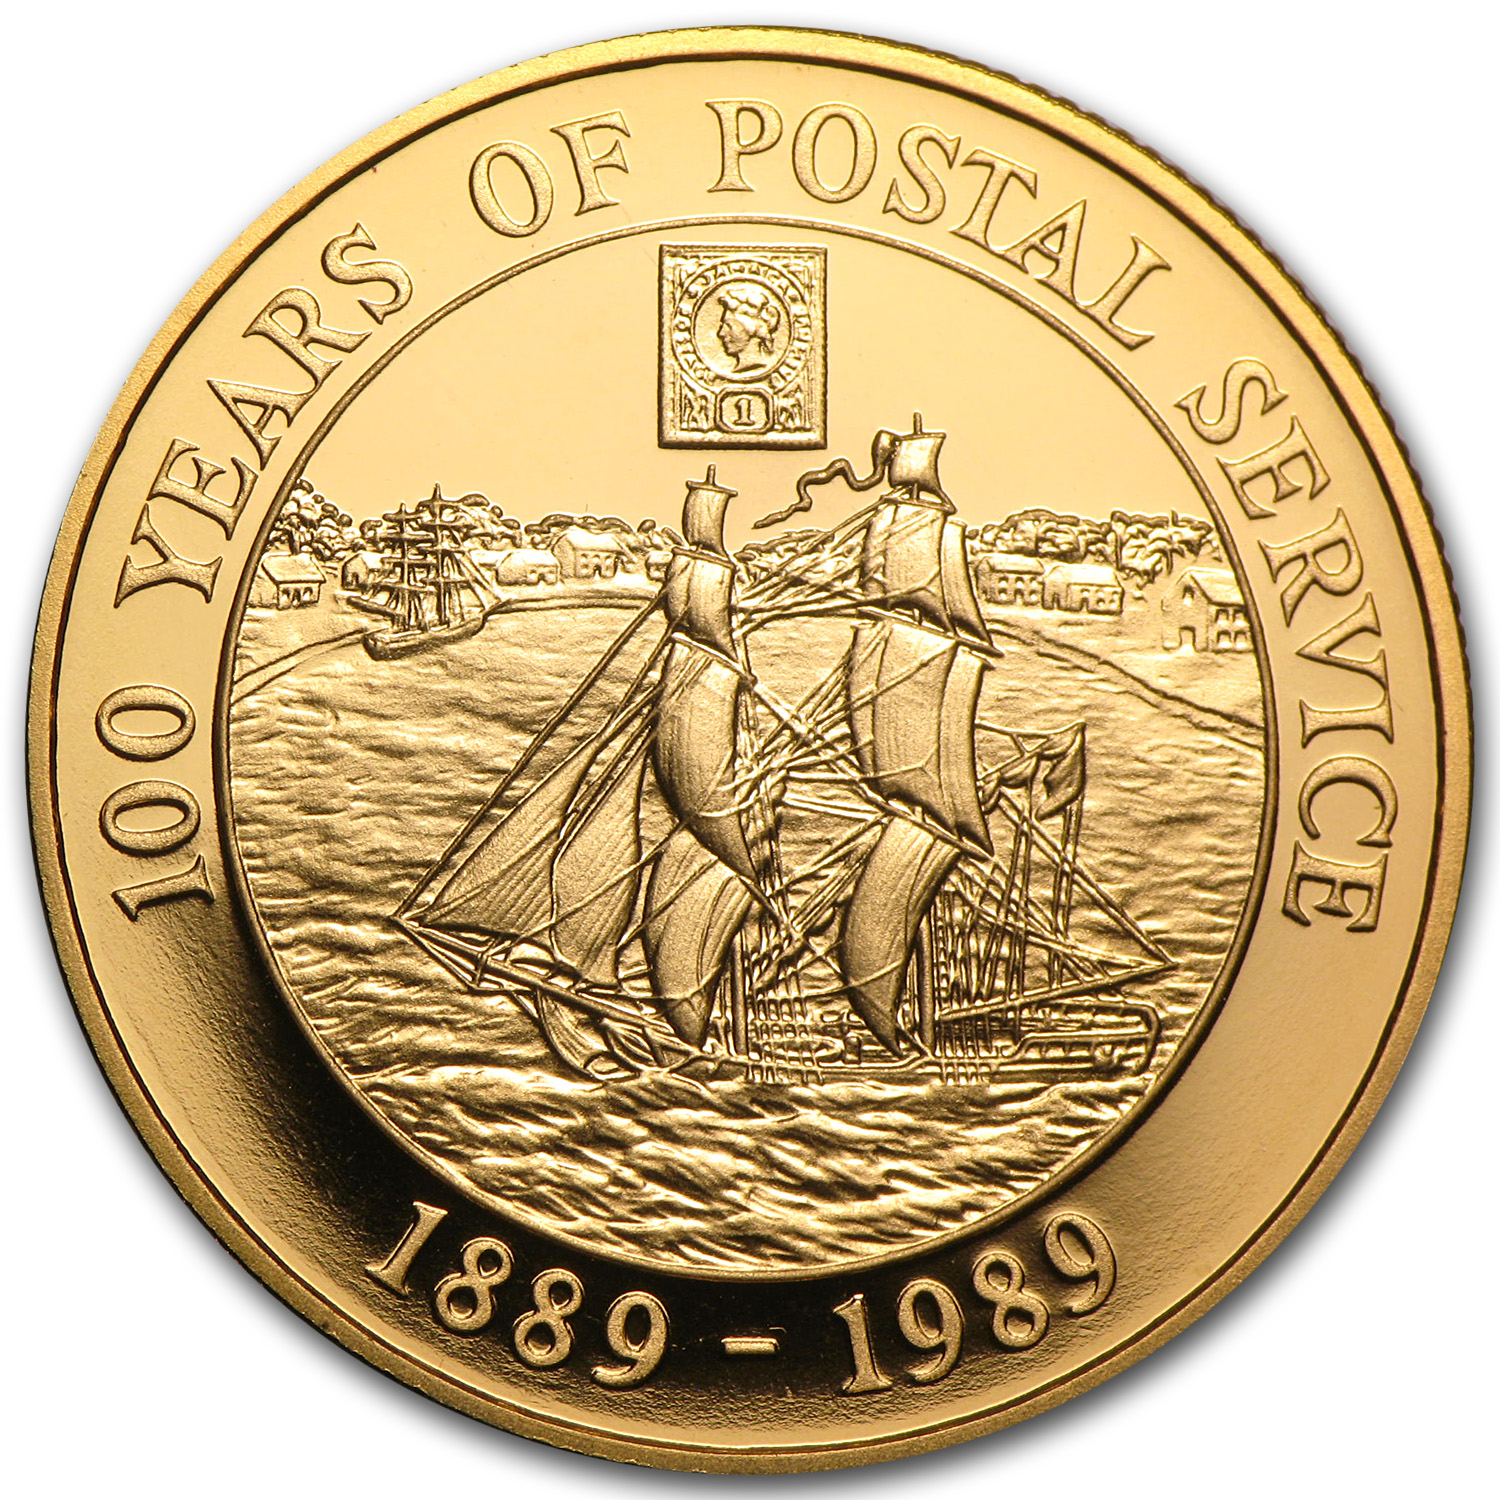 1989 Cayman Islands Proof Gold 100 Dollars Postal Service